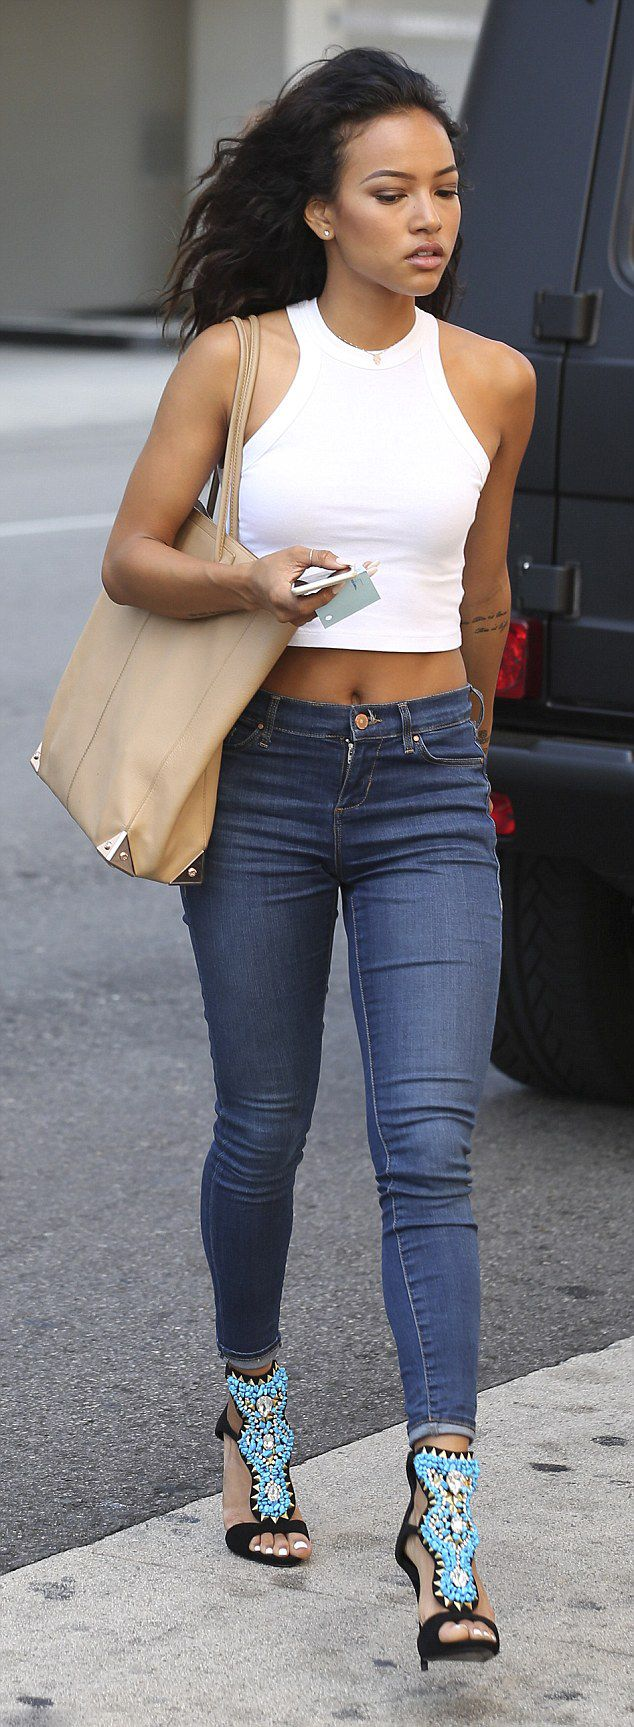 Karrueche-Tran-hit-up-hot-spot-Mr.-Chow-in-a-crop-top-high-waisted-jeans-and-her-favorite-Giuseppe-Zanotti-turquoise-beaded-sandals..jpg (634×1727)